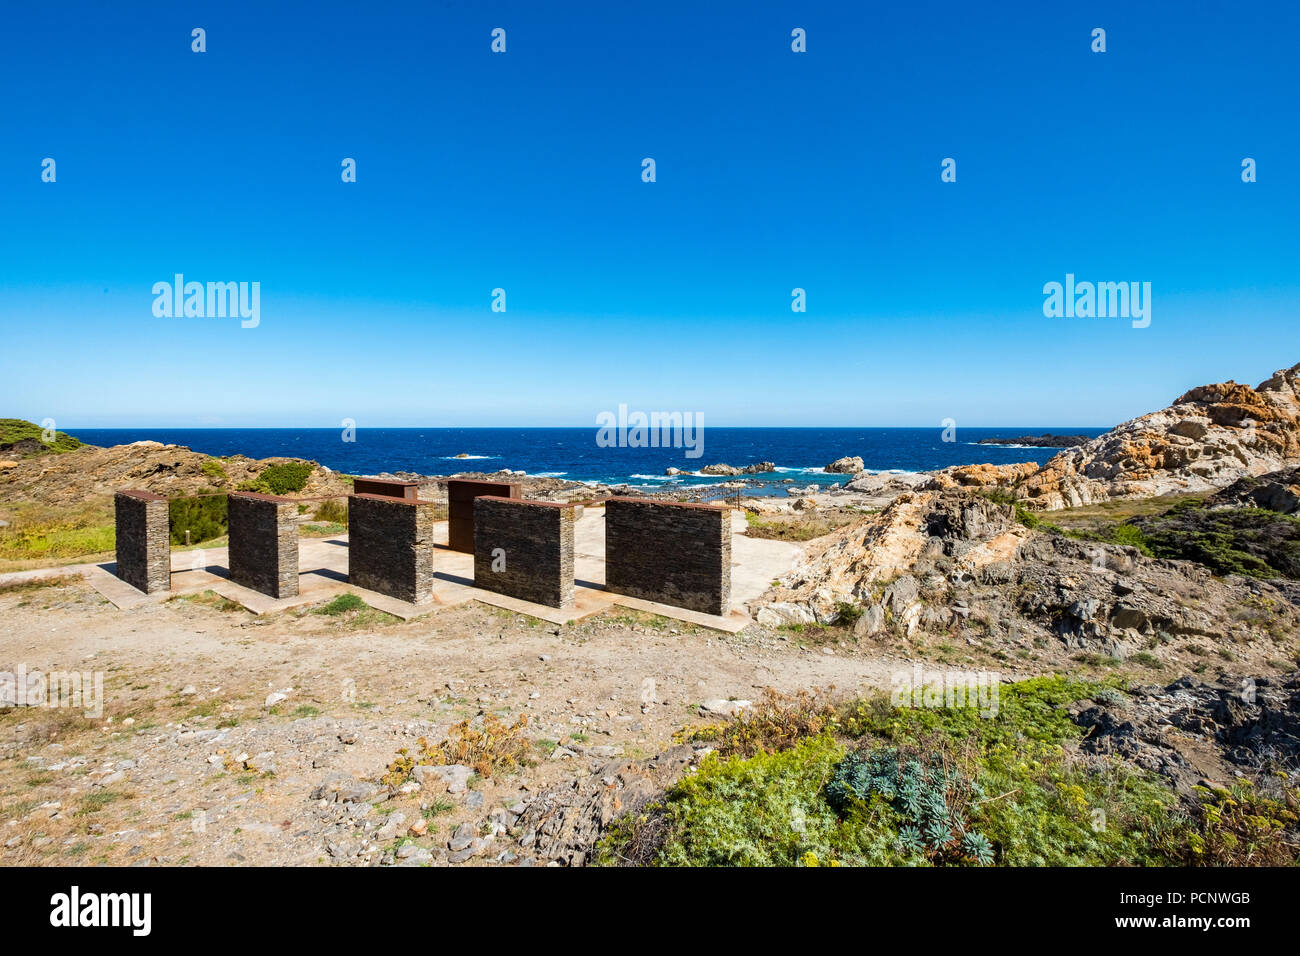 In Cap de Creus a Club Med was deconstructed with the idea of recovering the landscape of this part of the Costa Brava. In its place small interventions of landscape architecture were made. Catalonia,Spain - Stock Image